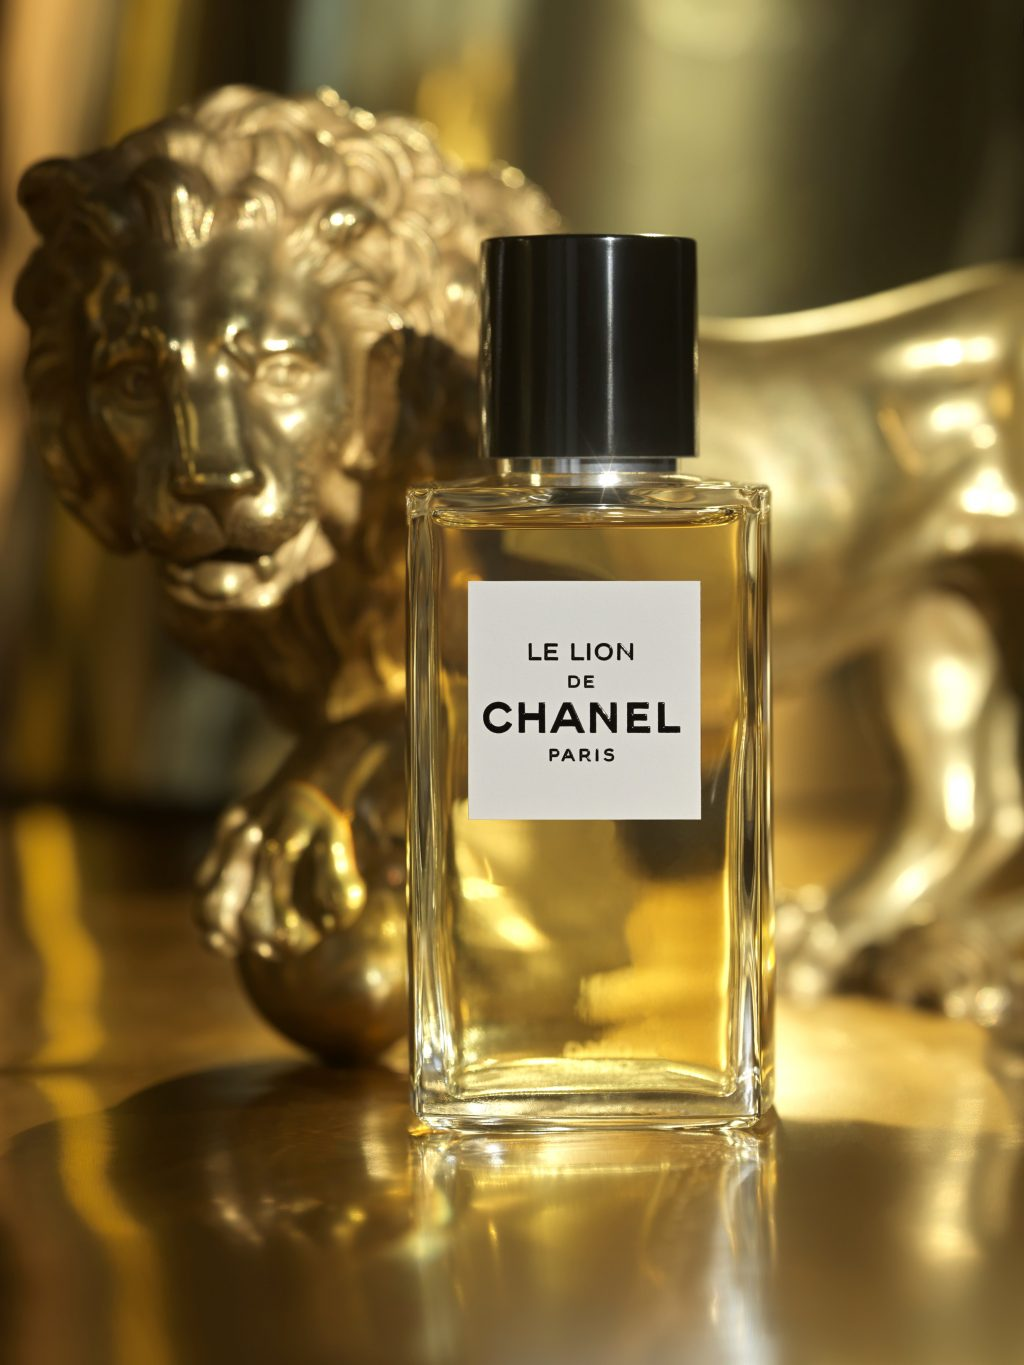 Chanel's New Fragrance, Exclusive to the Middle East, Is a Roaring Success